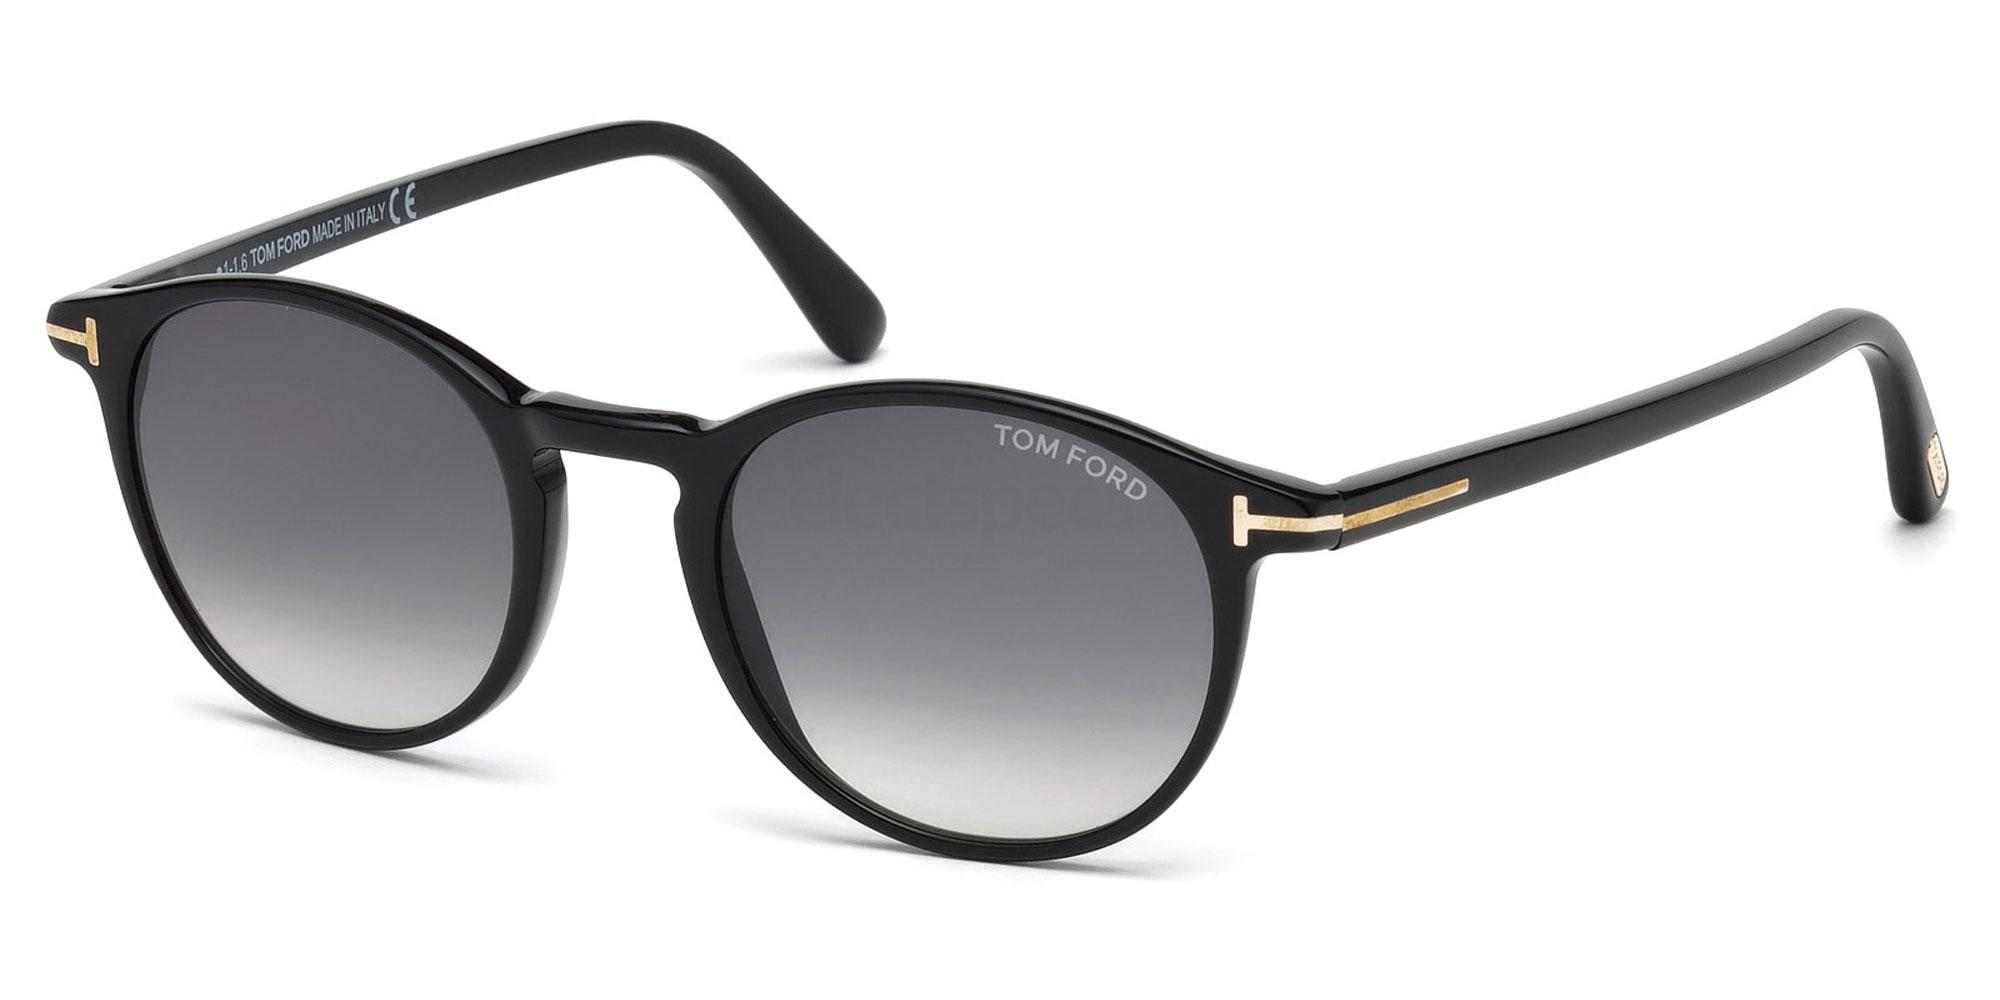 01B FT0539 Sunglasses, Tom Ford